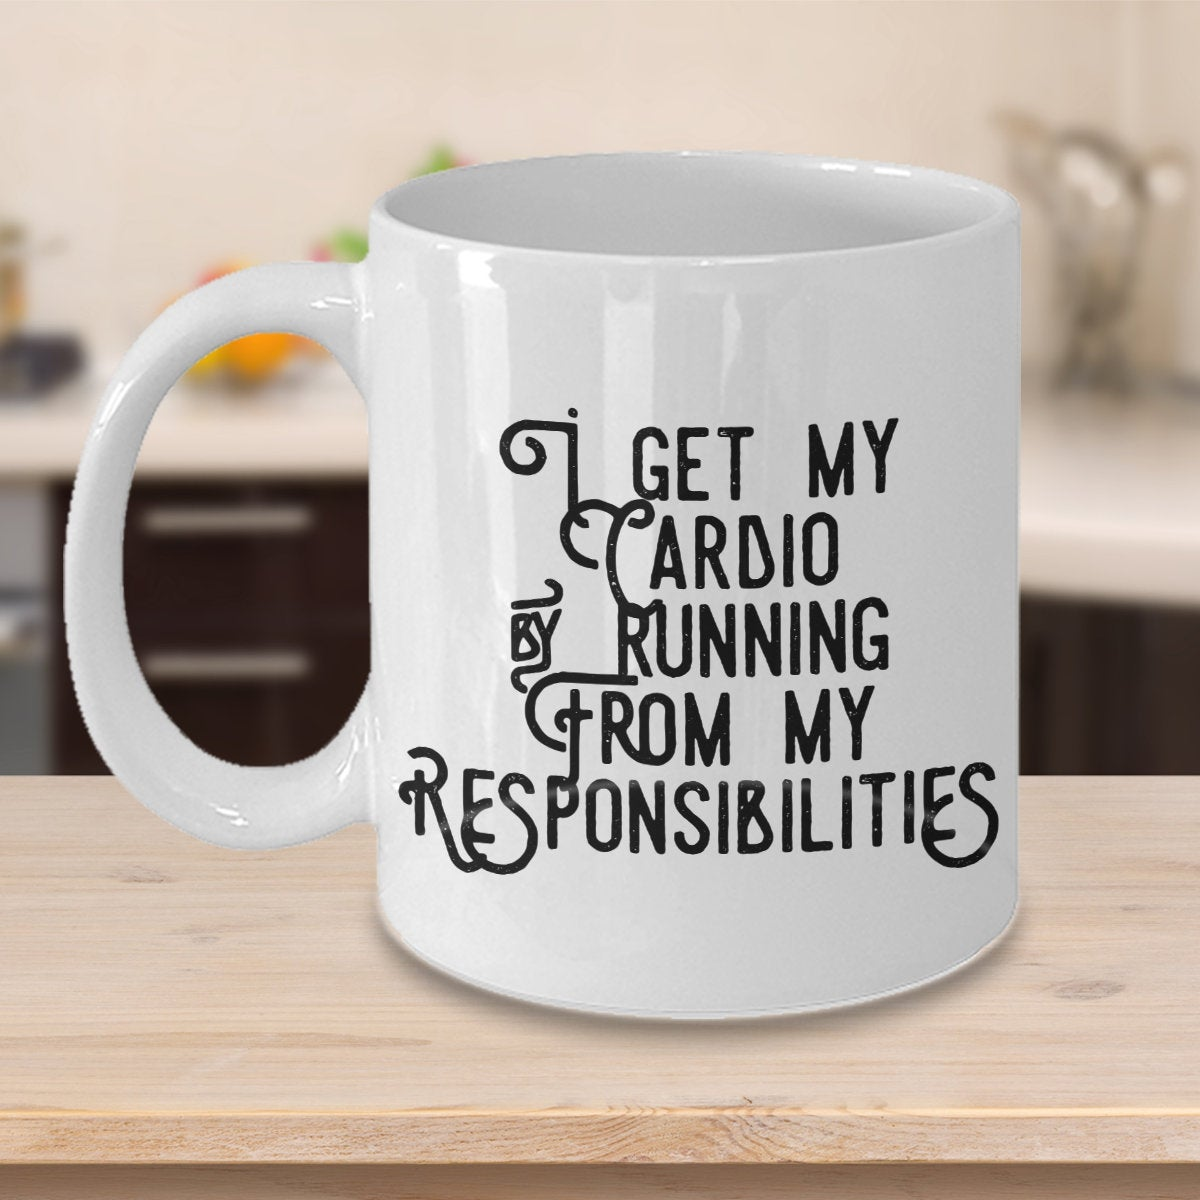 Excited to share the latest addition to my #etsy shop: I get my cardio by running from my responsibilities funny mug  #housewares #cardio #workout #funny #morningjog #inthemorning #morningrun #workingout #dreadmill